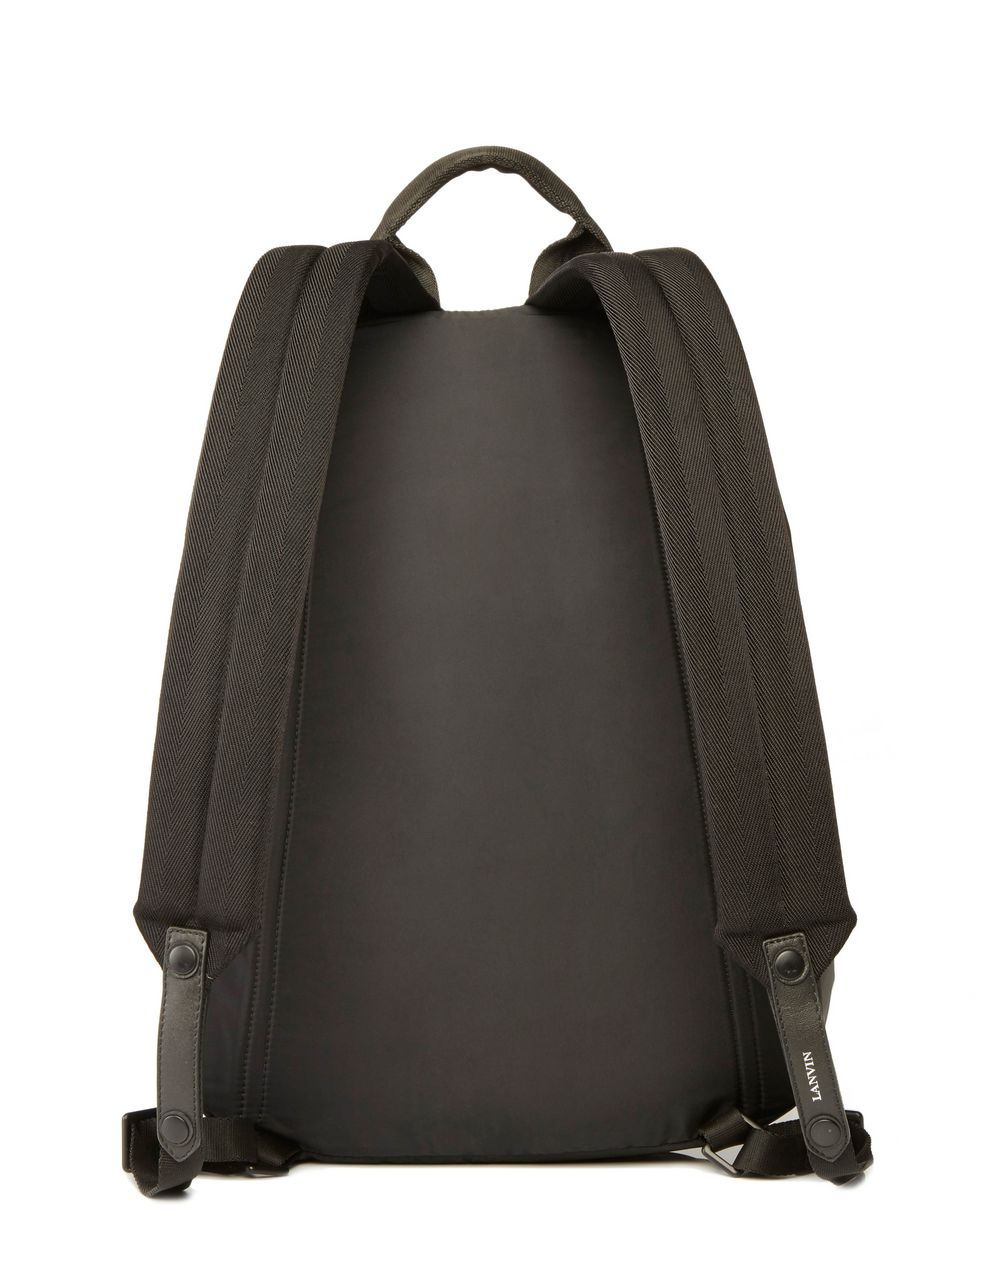 NYLON ZIPPED BACKPACK - Lanvin